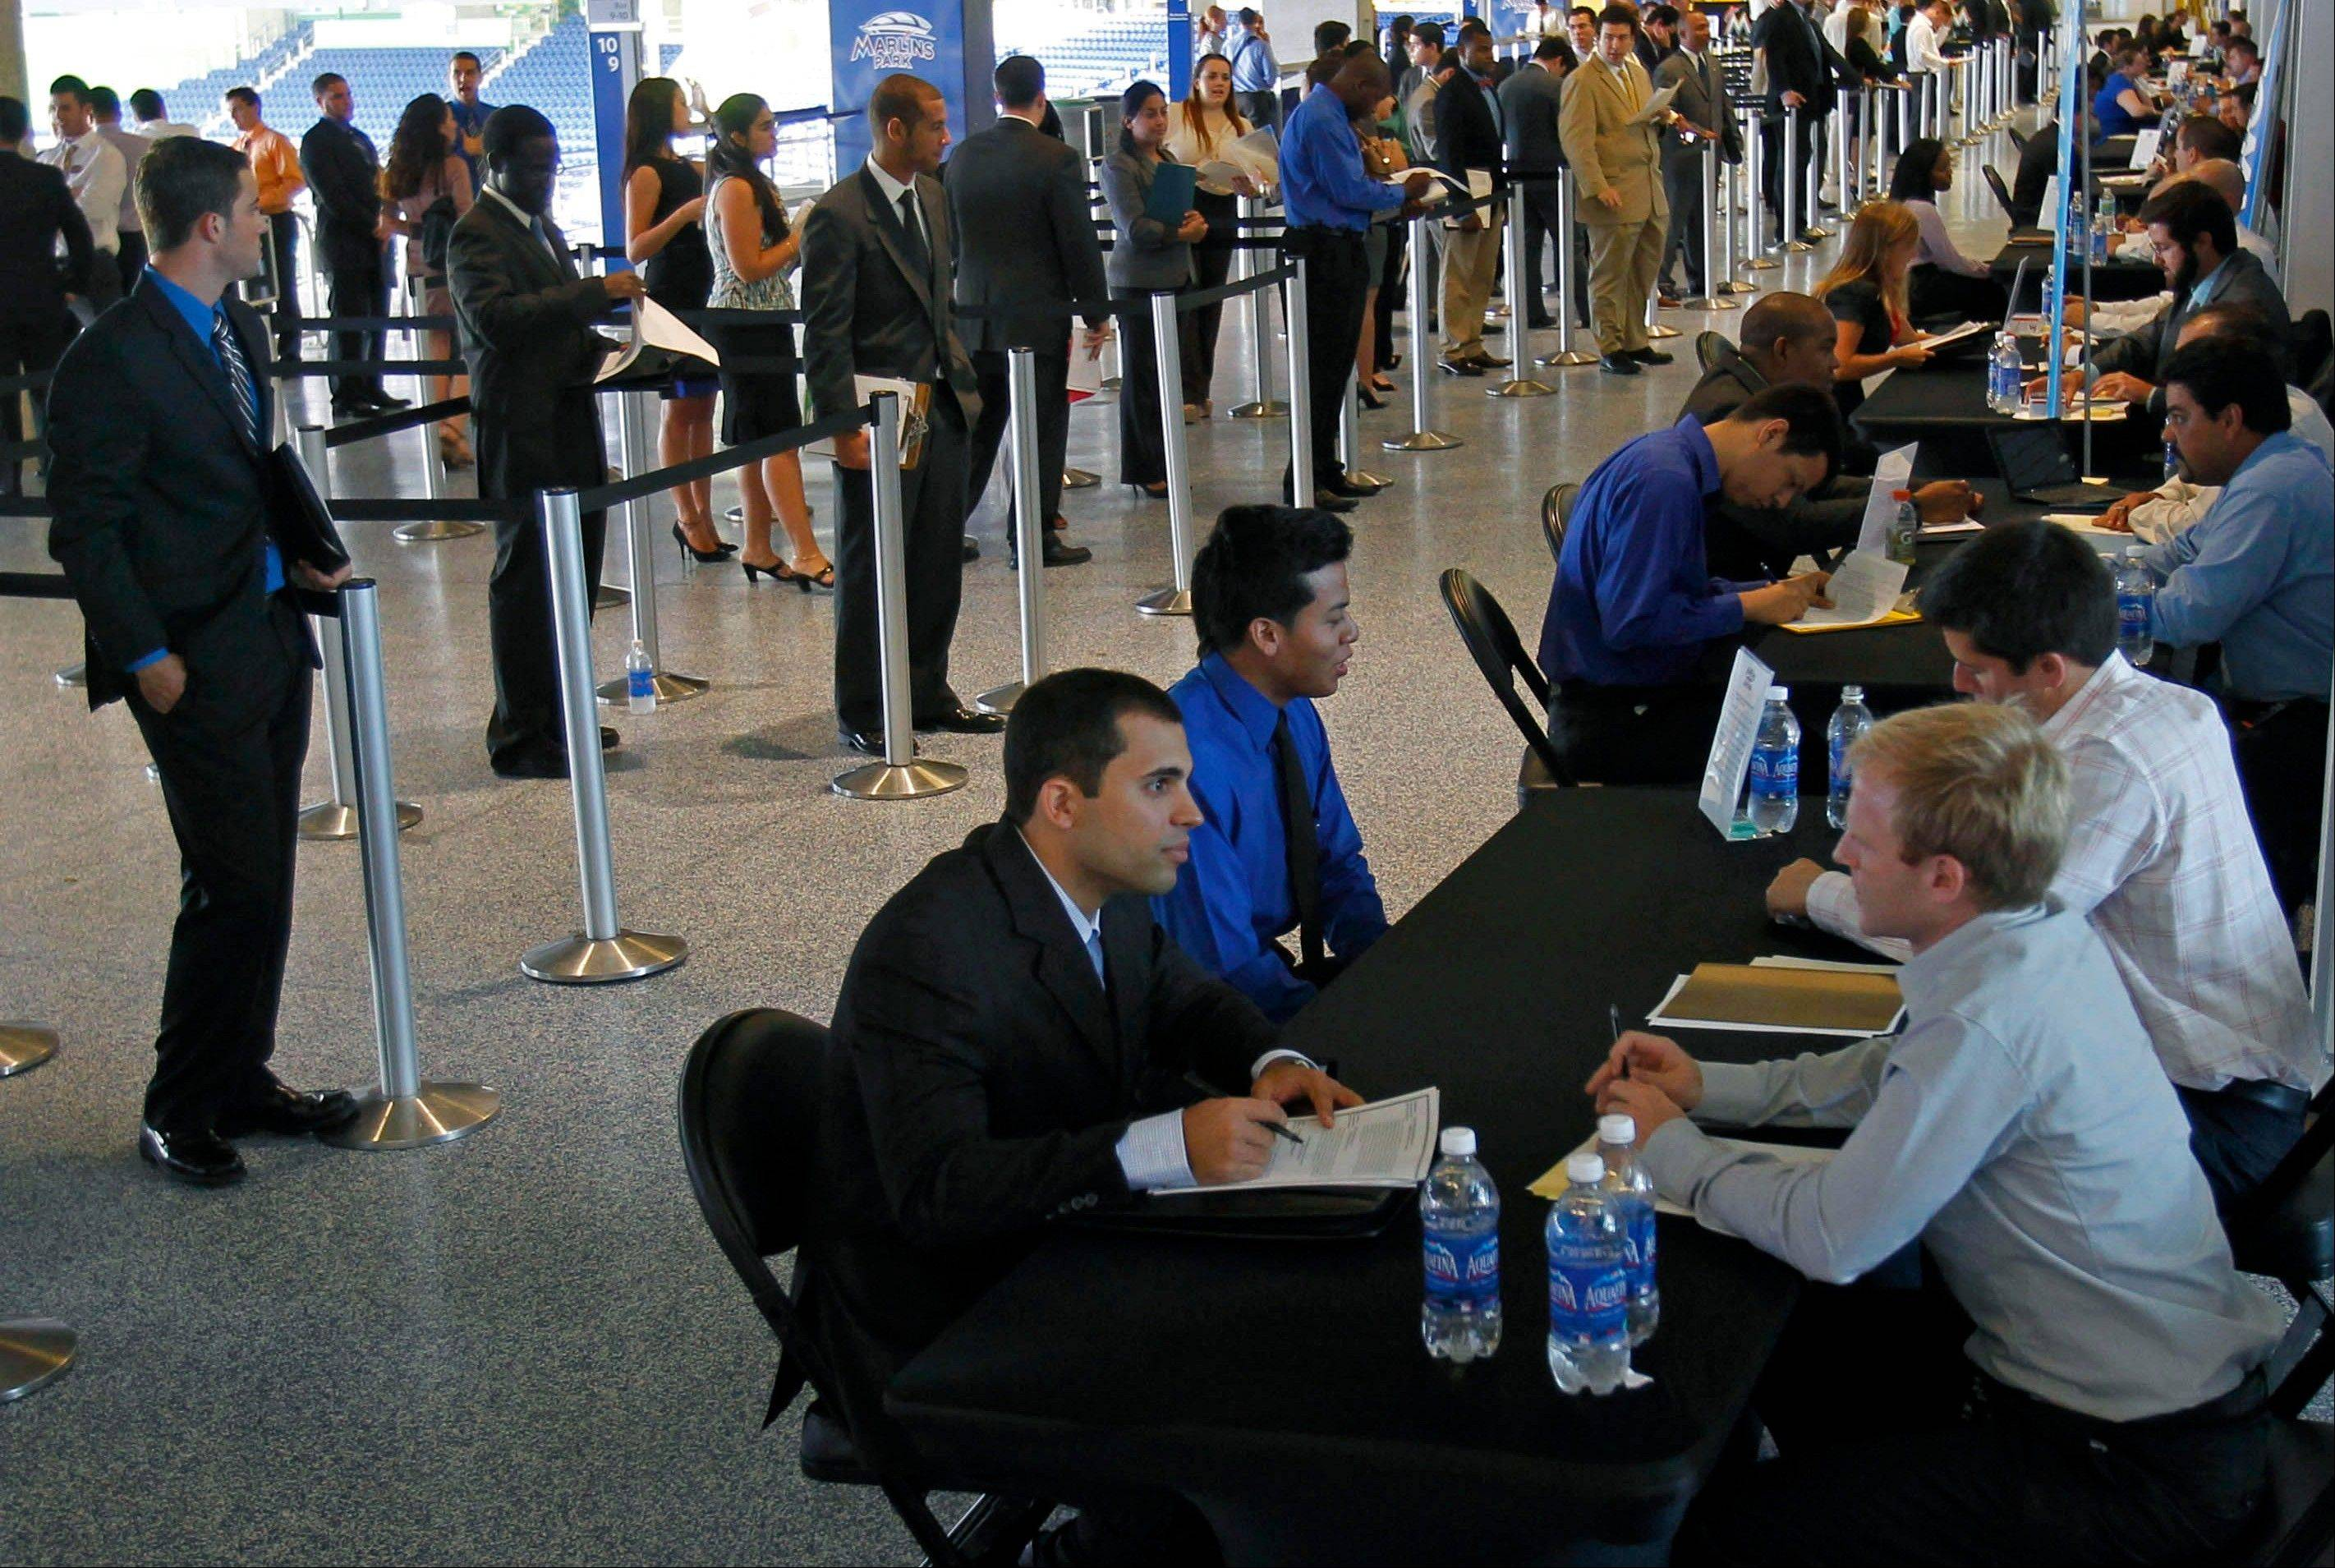 Job applicants are interviewed by Florida Marlins staff at Marlins Park in Miami. Weekly applications for U.S. unemployment aid fell last week to a seasonally adjusted 369,000, a level consistent with modest hiring.